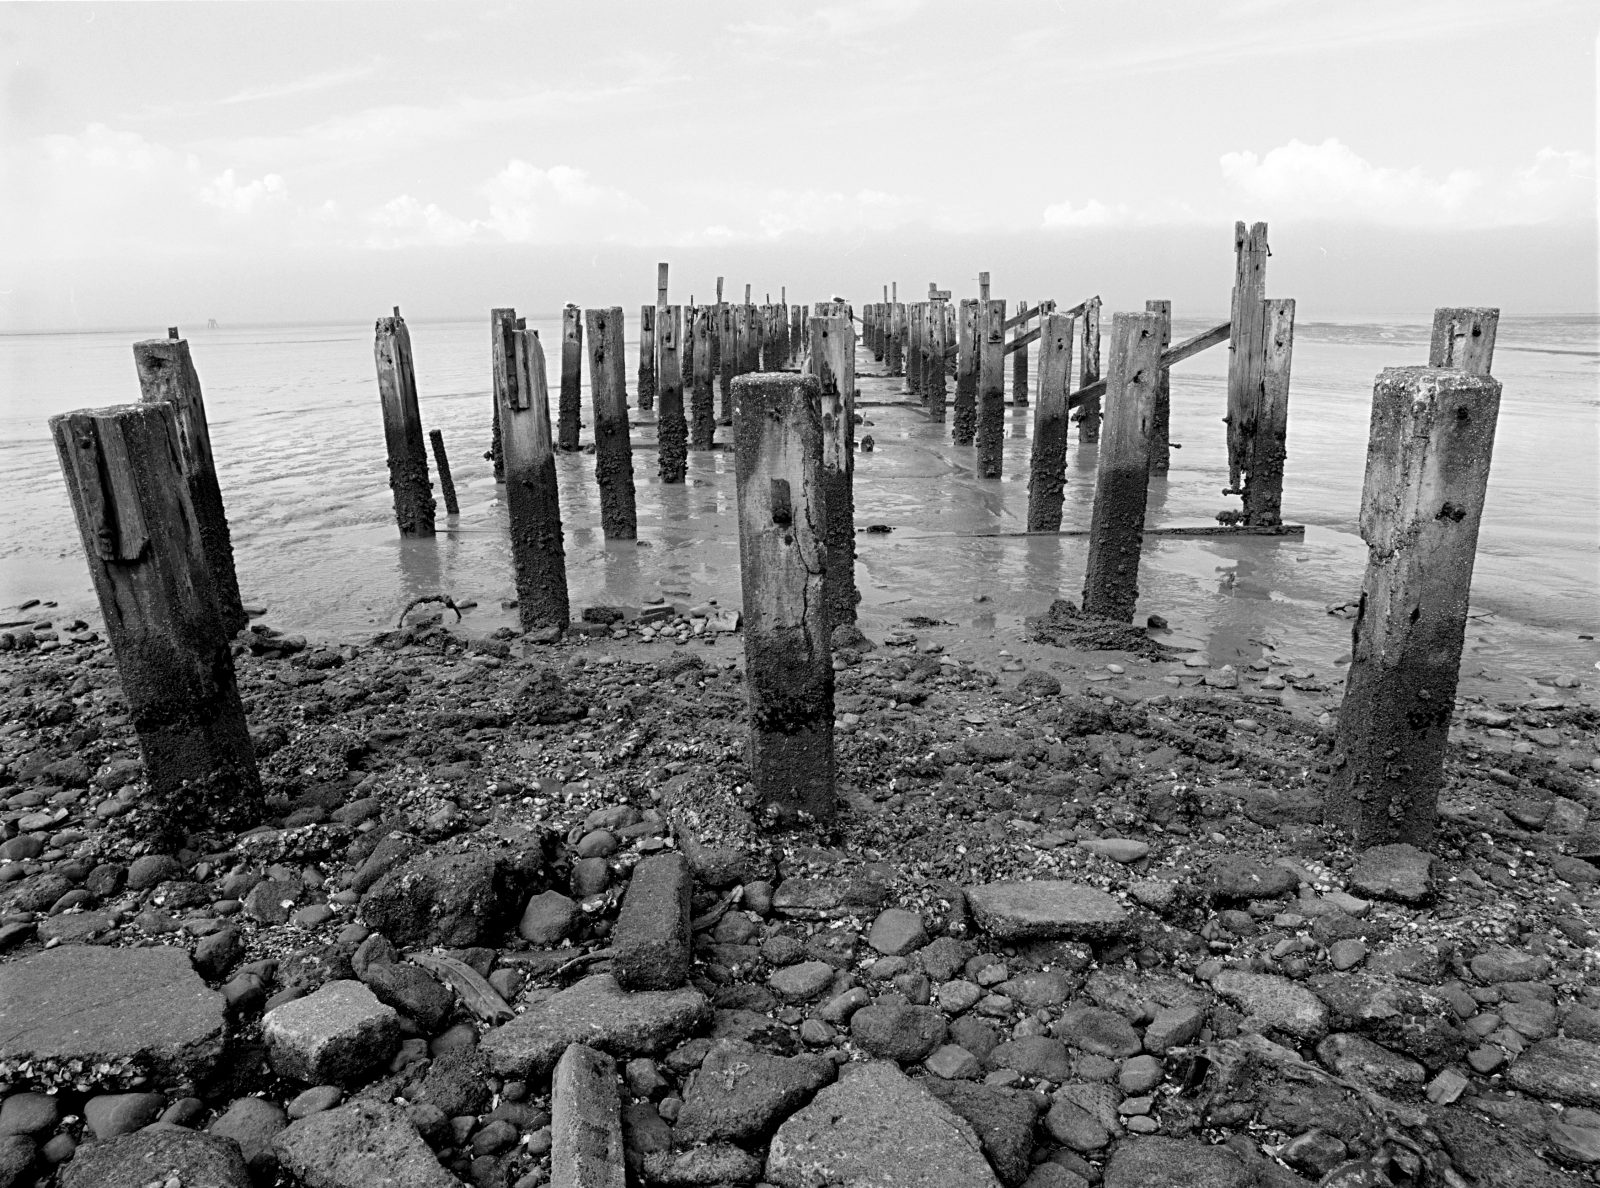 Today, the rotting piles of the Burke Street wharf are all that remains of one of several long deep-water wharves to service Grahamstown in its gold-boom heyday. Up to 200 vessels a month discharged their goods and passengers here, and much of the estimated £6,000,000 worth of gold recovered over the sixty-five year life span of the Thames goldfield crossed this wharf.